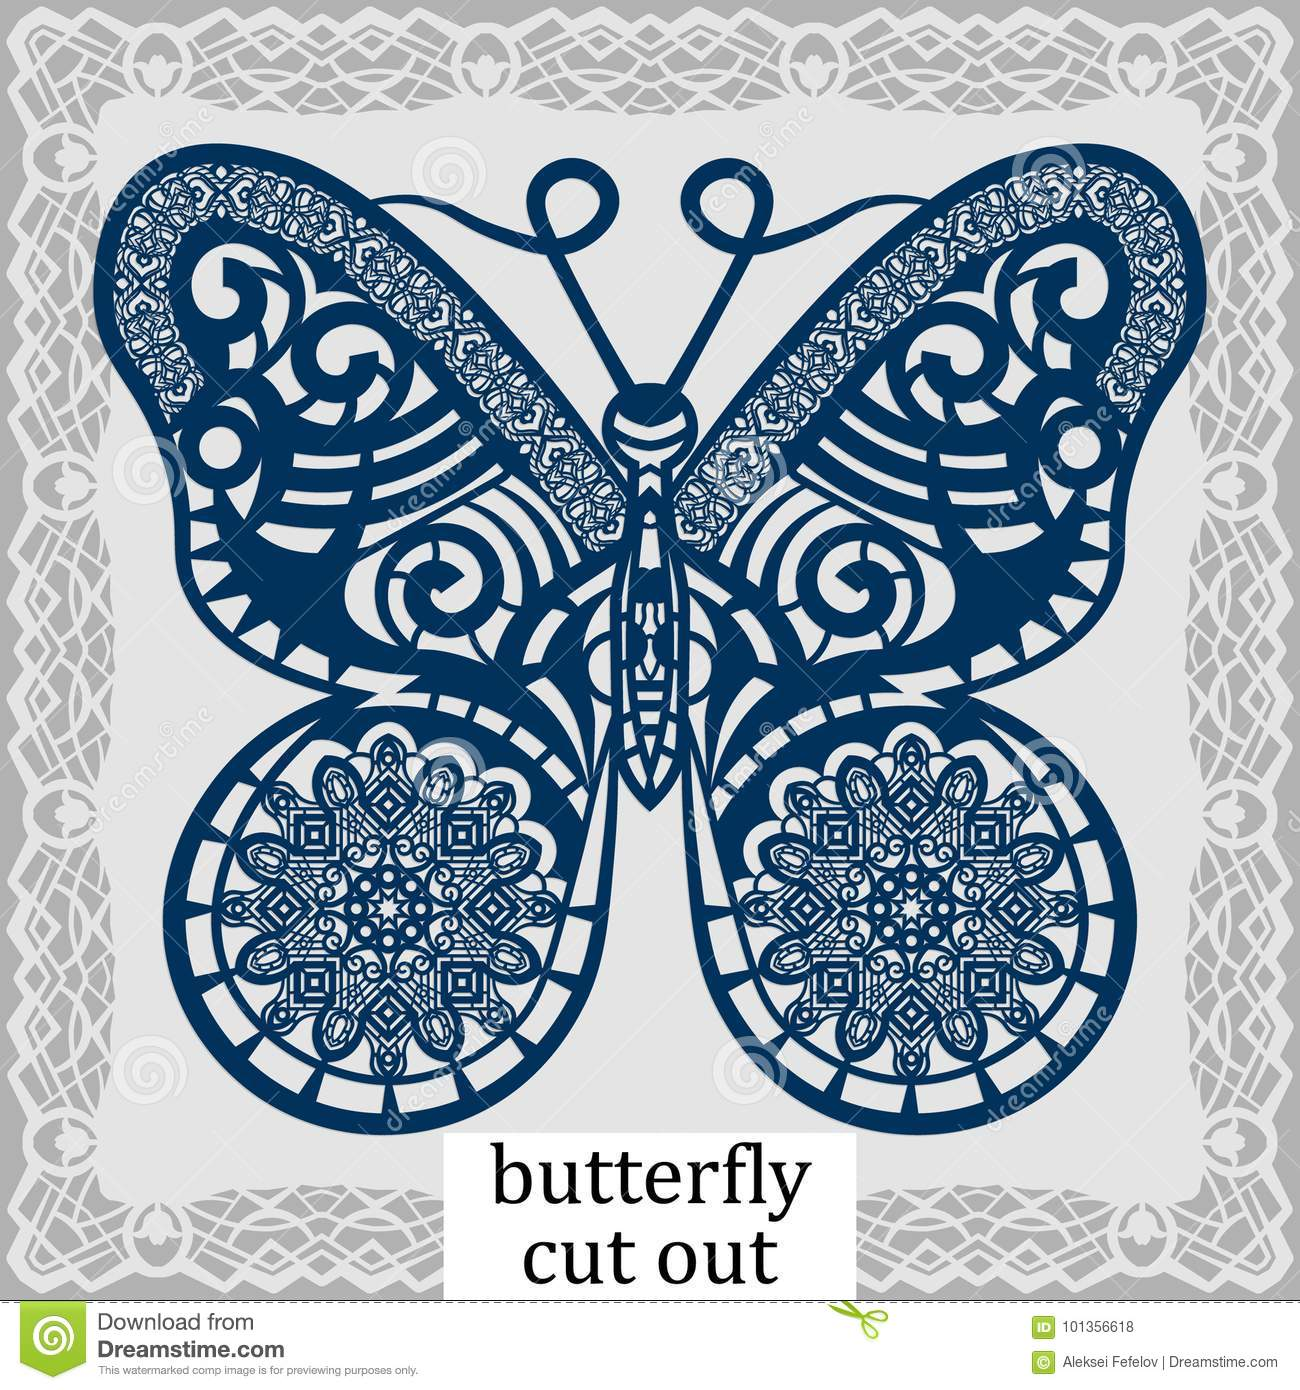 Butterfly - A Template For Laser Cutting  Design Element For A